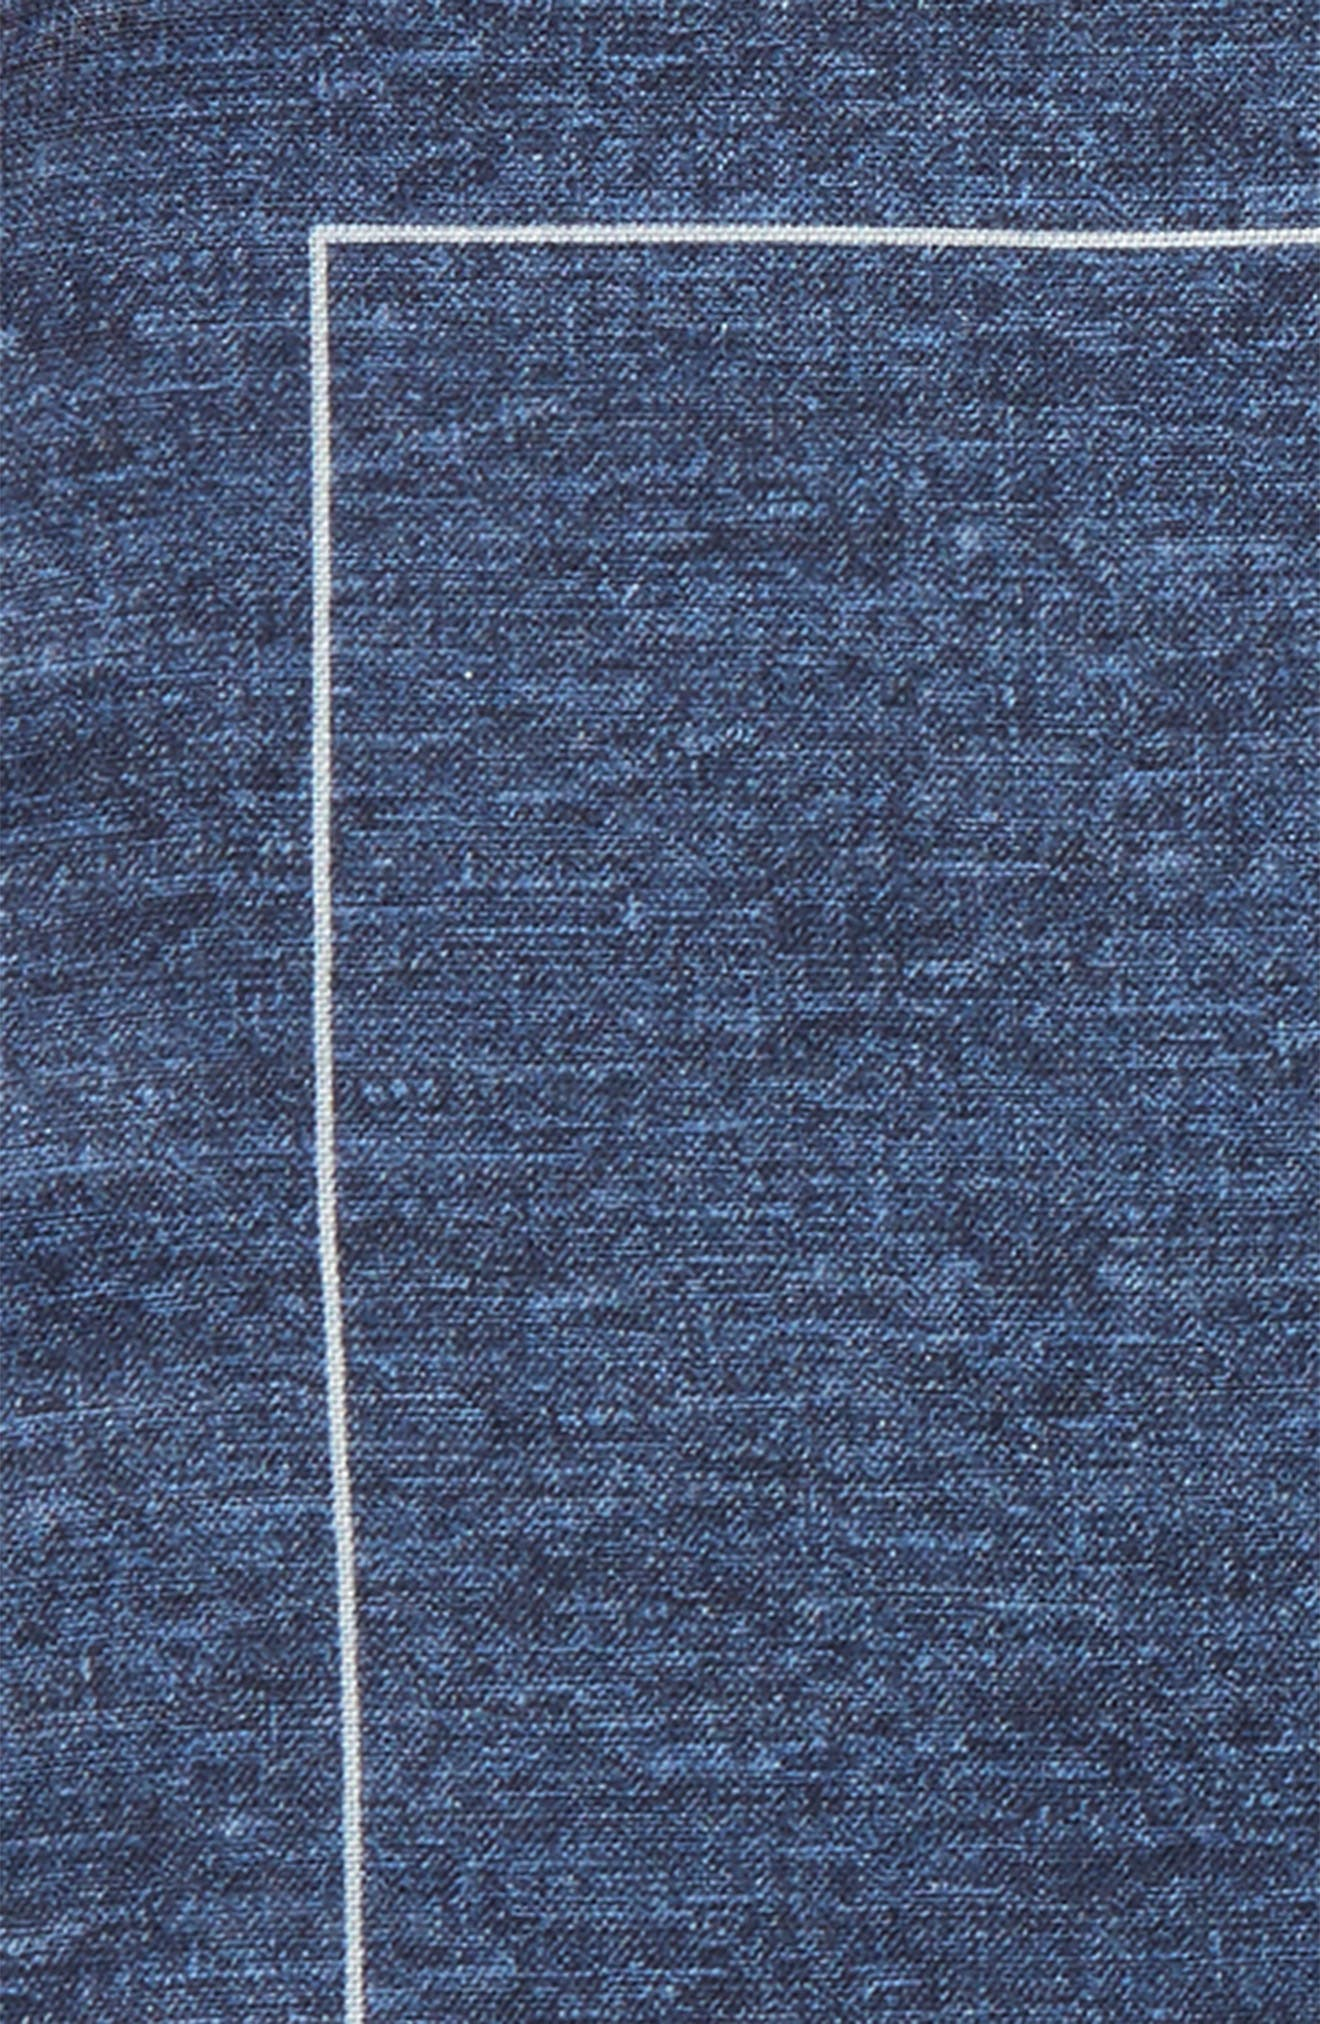 Denim Print Silk Pocket Square,                             Alternate thumbnail 3, color,                             410